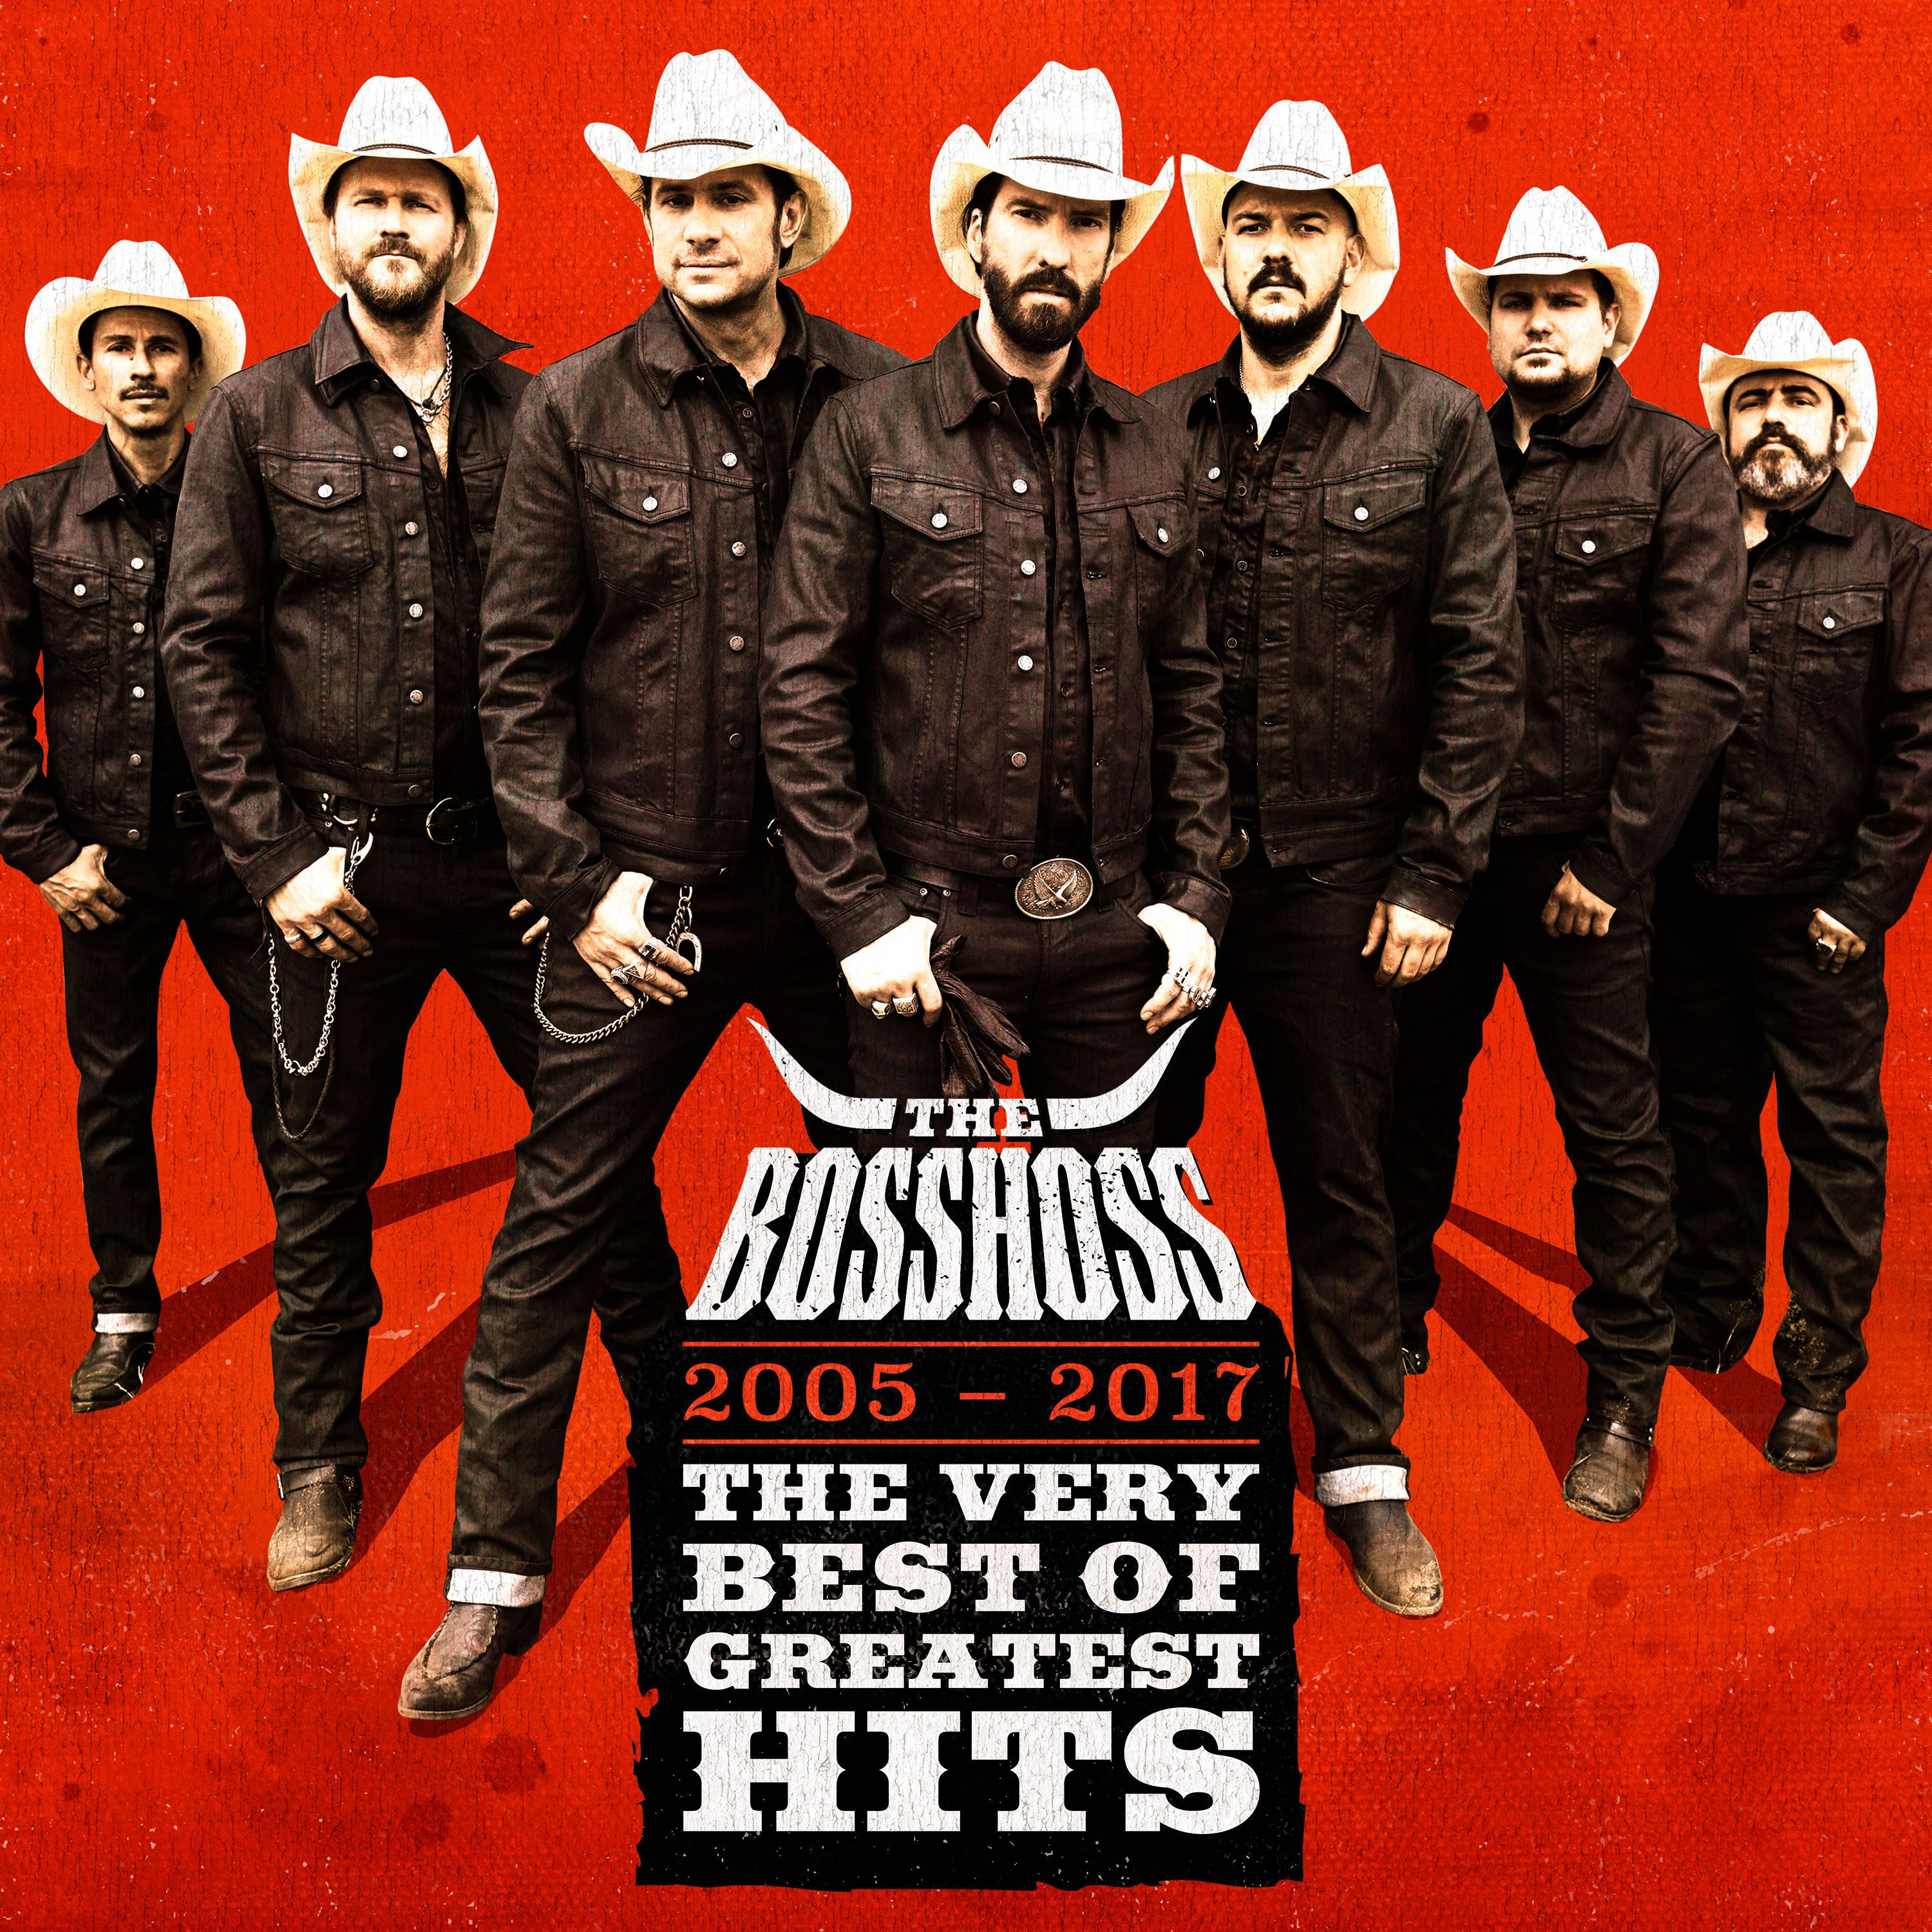 The Very Best Of Greatest Hits 2005 2017 By The Bosshoss